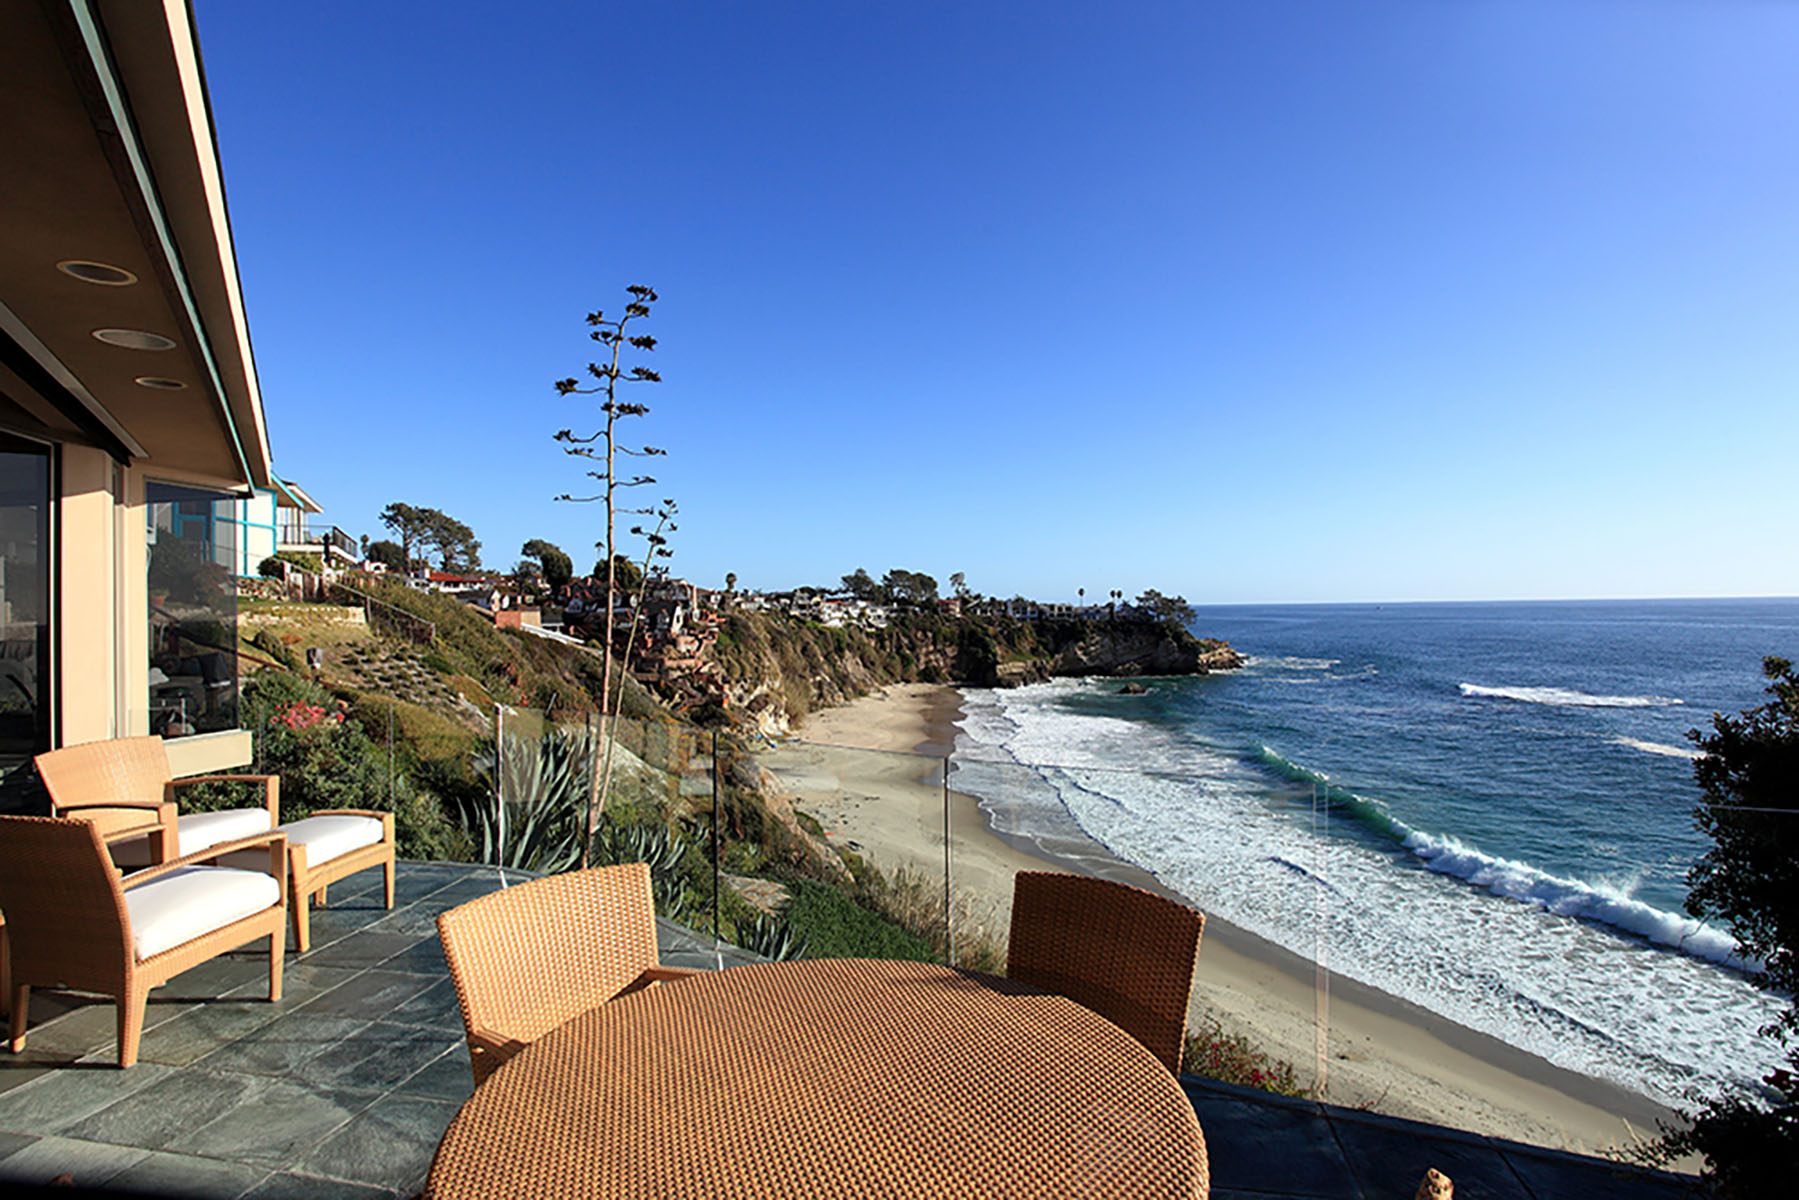 Casa Unifamiliar por un Venta en 2 Mar Vista Lane Laguna Beach, California 92651 Estados Unidos